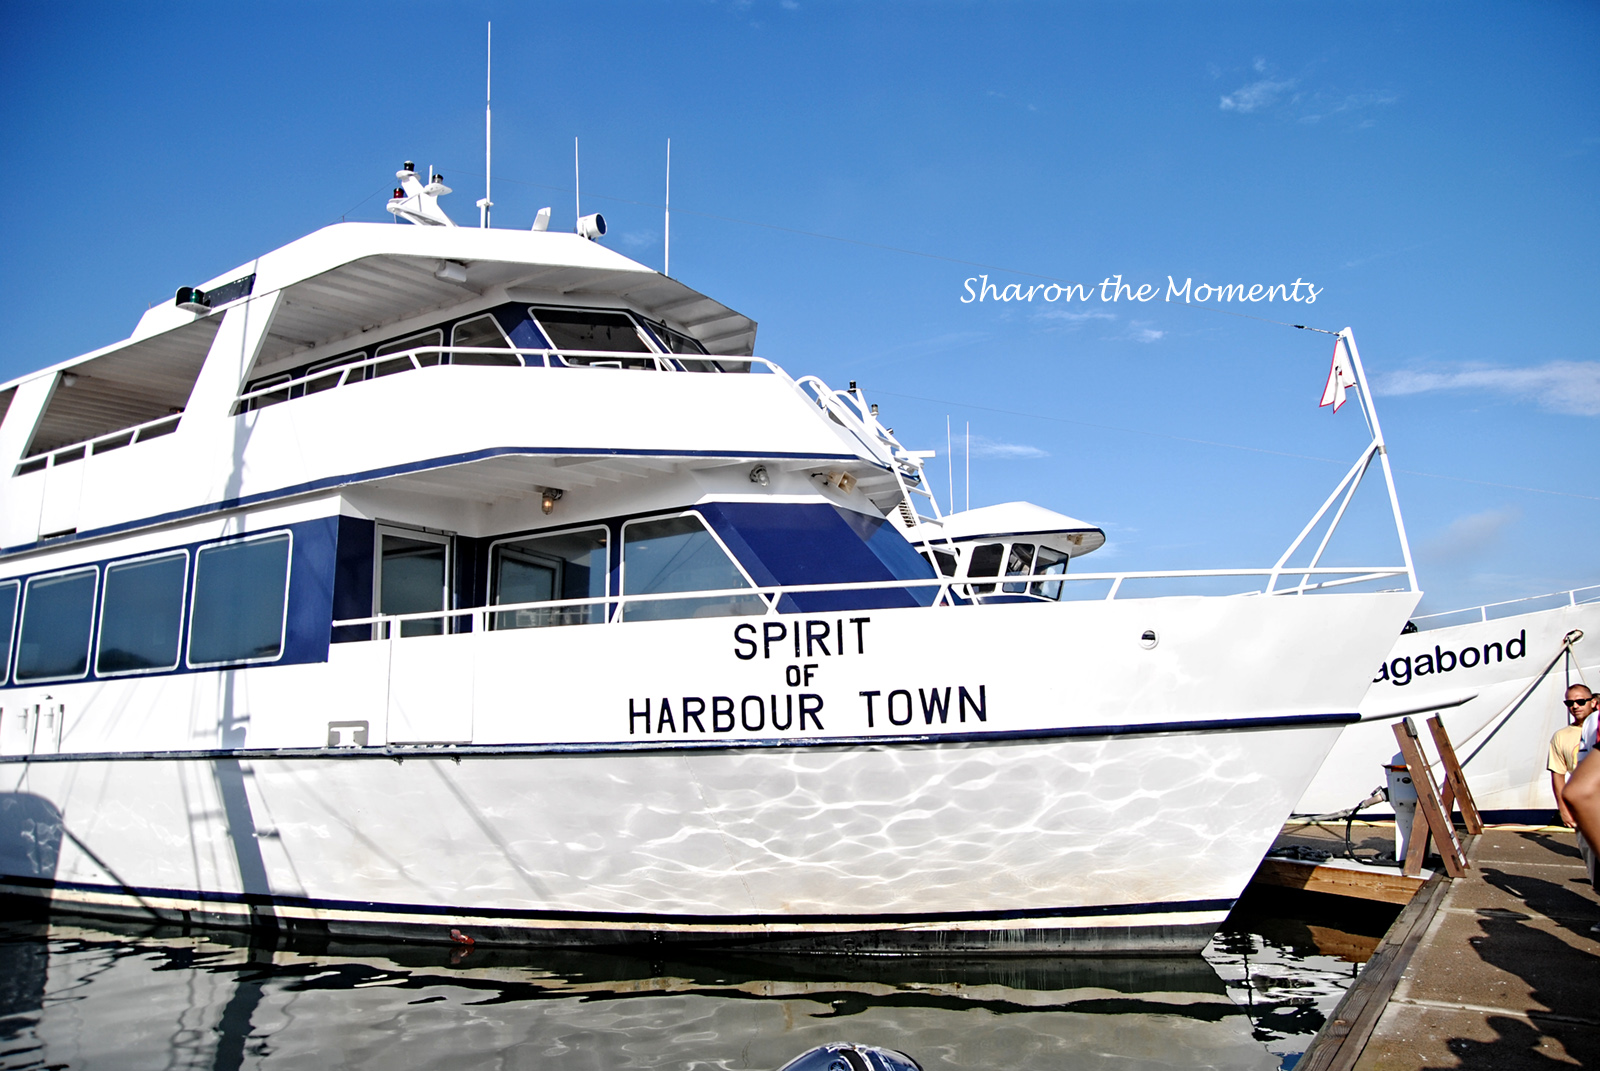 Spirit of Harbour Town Vagabond Cruise Hilton Head Island South Carolina|Sharon the Moments Blog